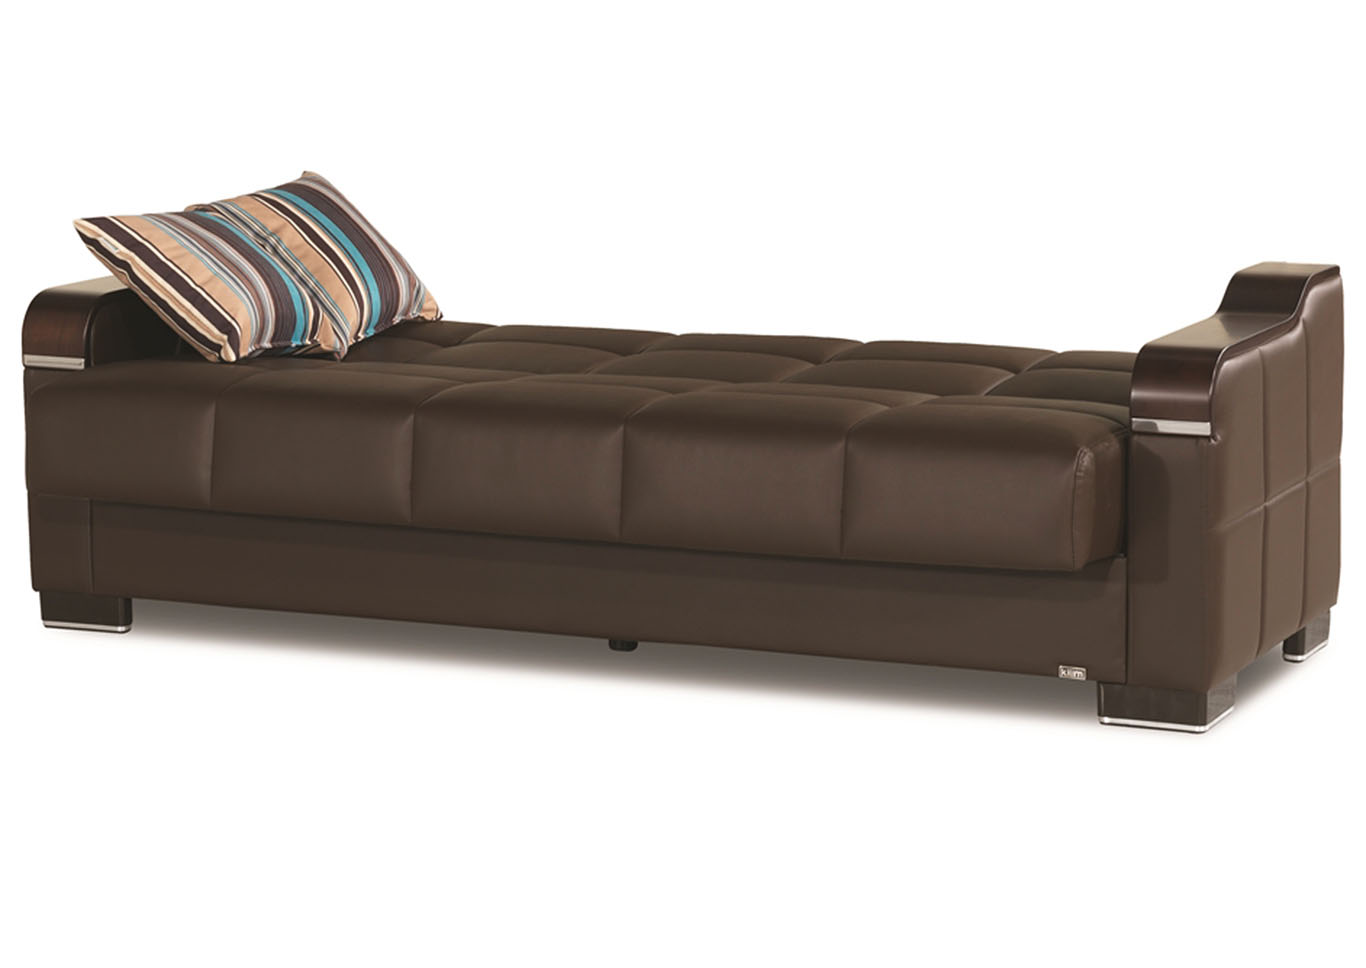 Uptown Brown PU Sofabed,CasaMode Functional Furniture